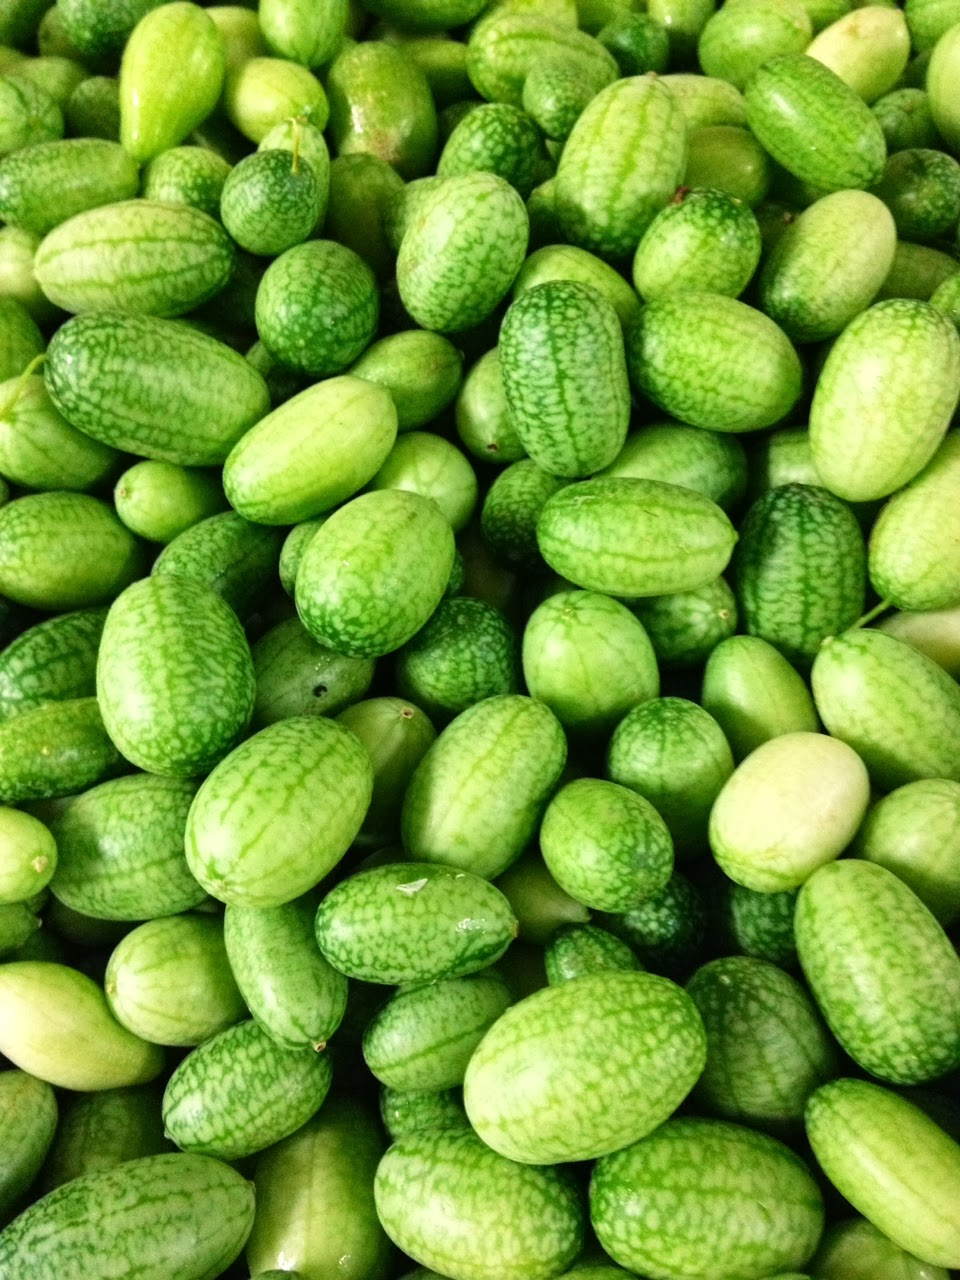 Cucamelons-taste-of-cucumbers-and-lime